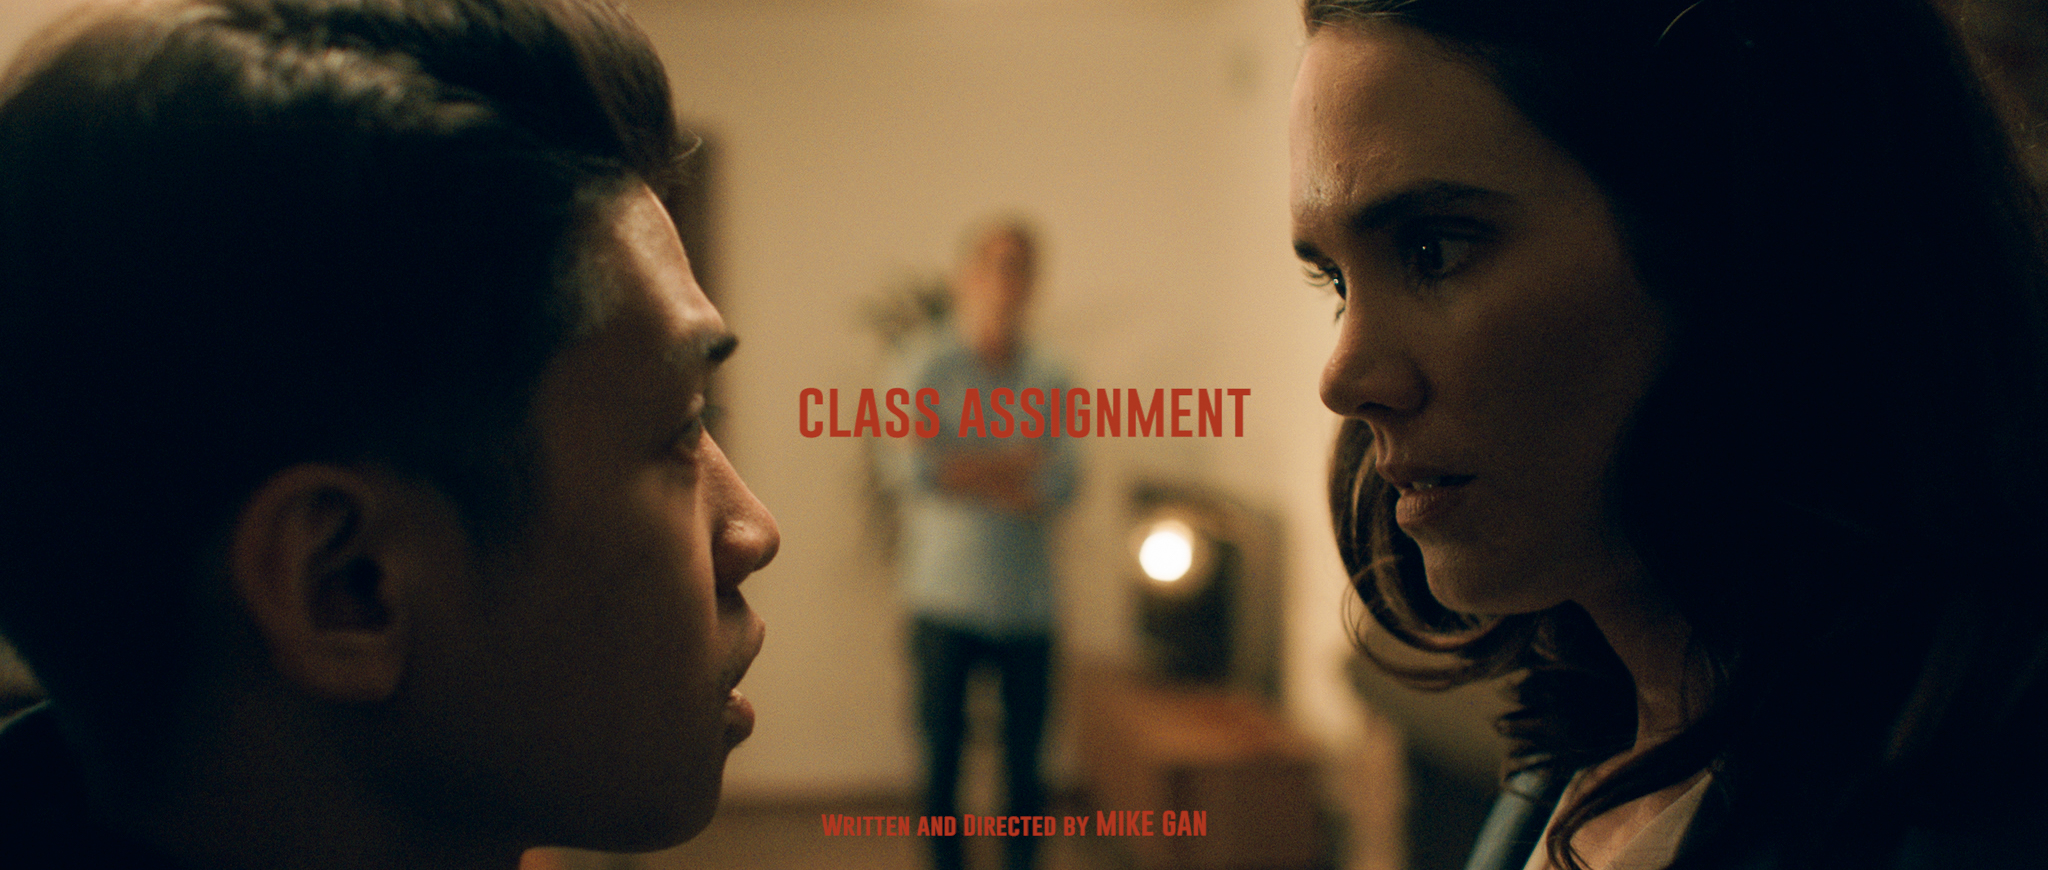 Samantha Smart and Paul Sobrepena in Class Assignment (2018)